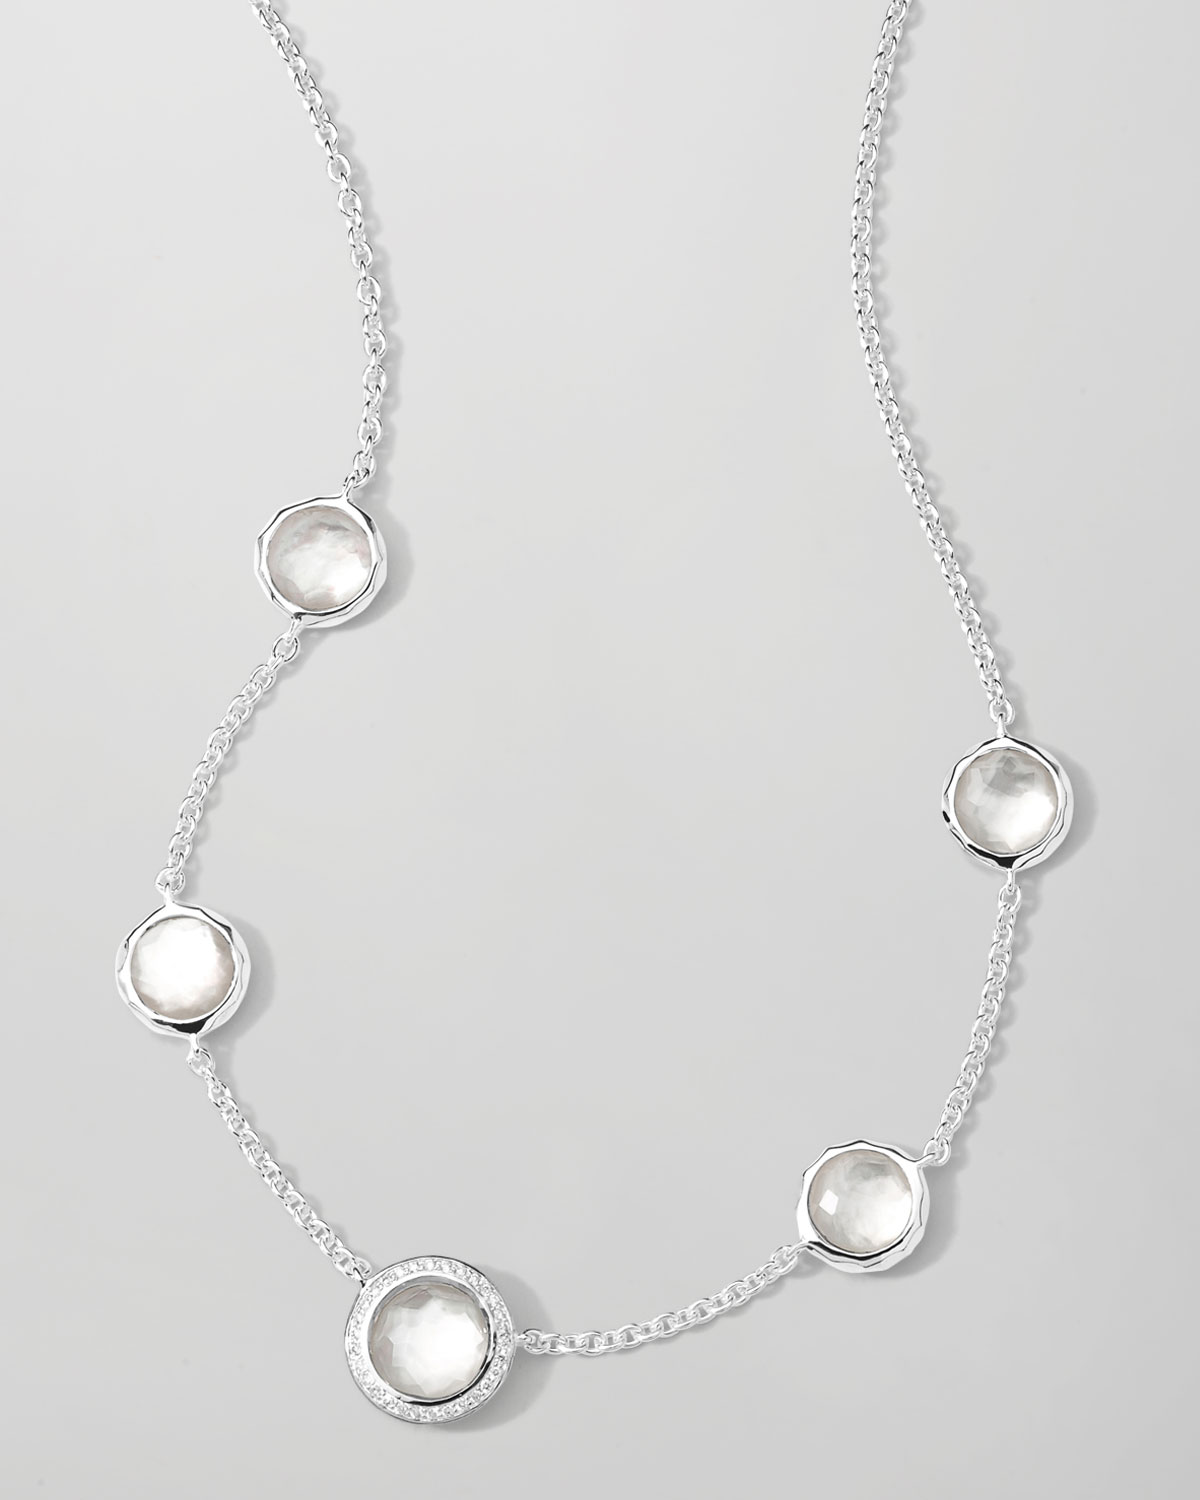 Ippolita Stella Necklace in Mother-of-Pearl Doublet & Diamonds 16-18 ZSrEs